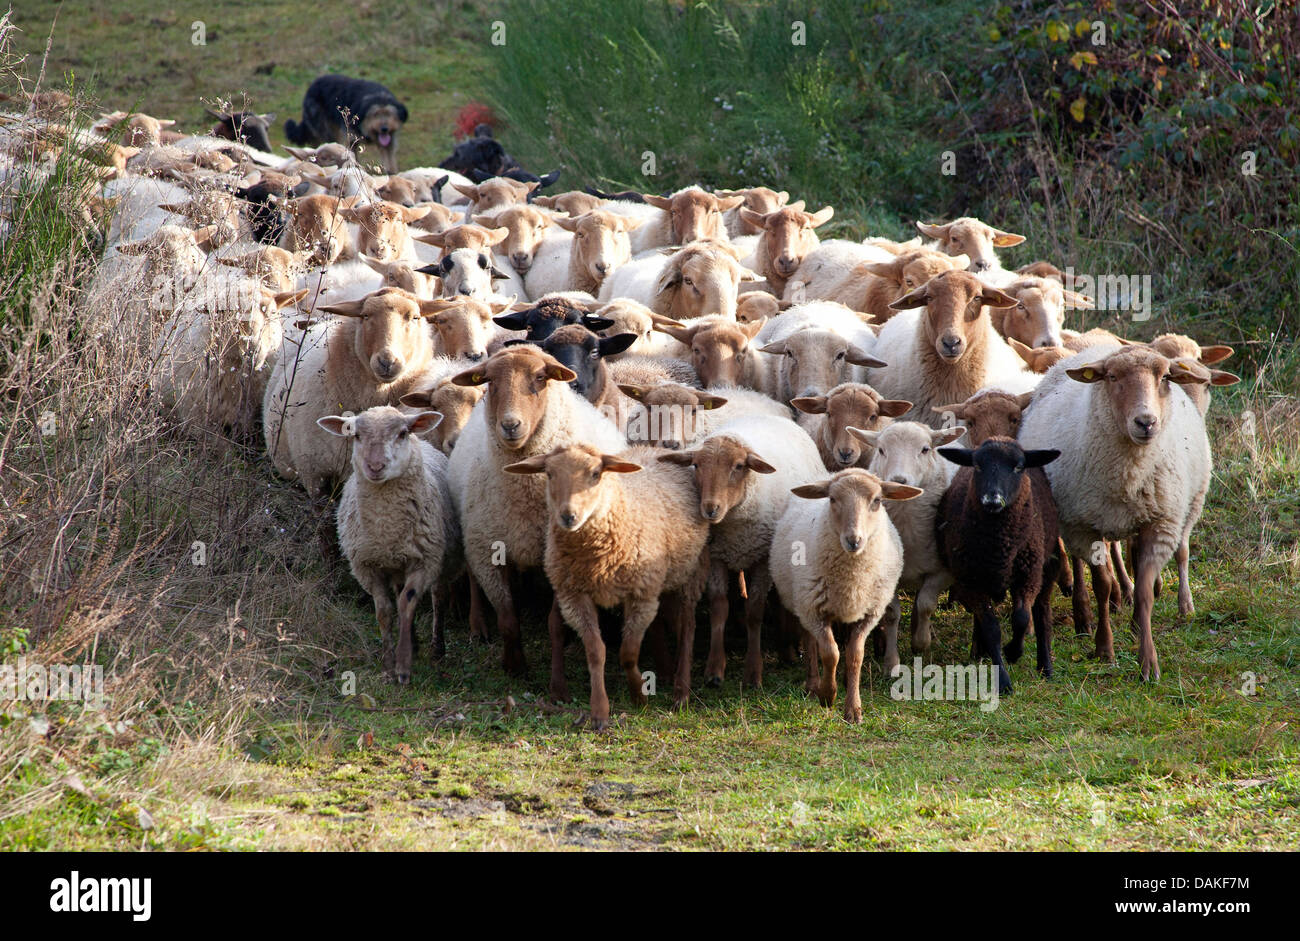 domestic sheep (Ovis ammon f. aries), flock of sheep walking on a path, Germany Stock Photo